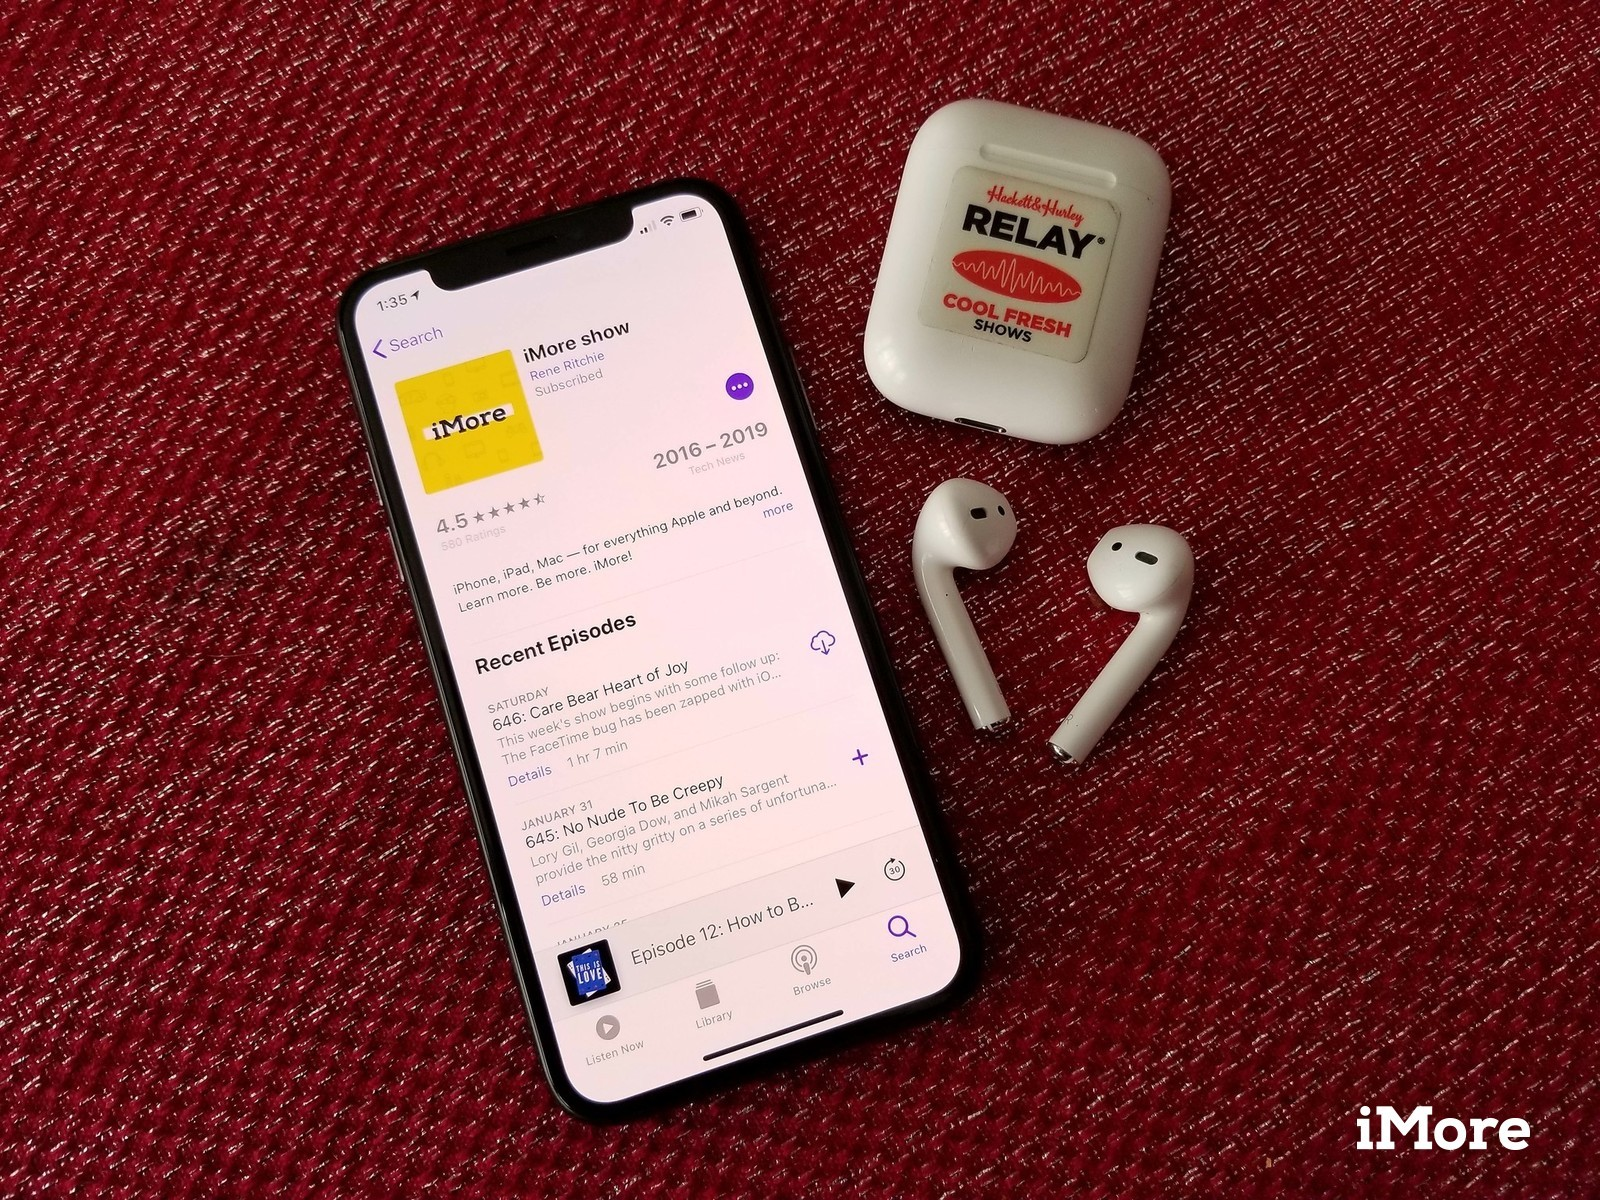 Apple Podcasts app showing off iMore Show with AirPods on red tablecloth